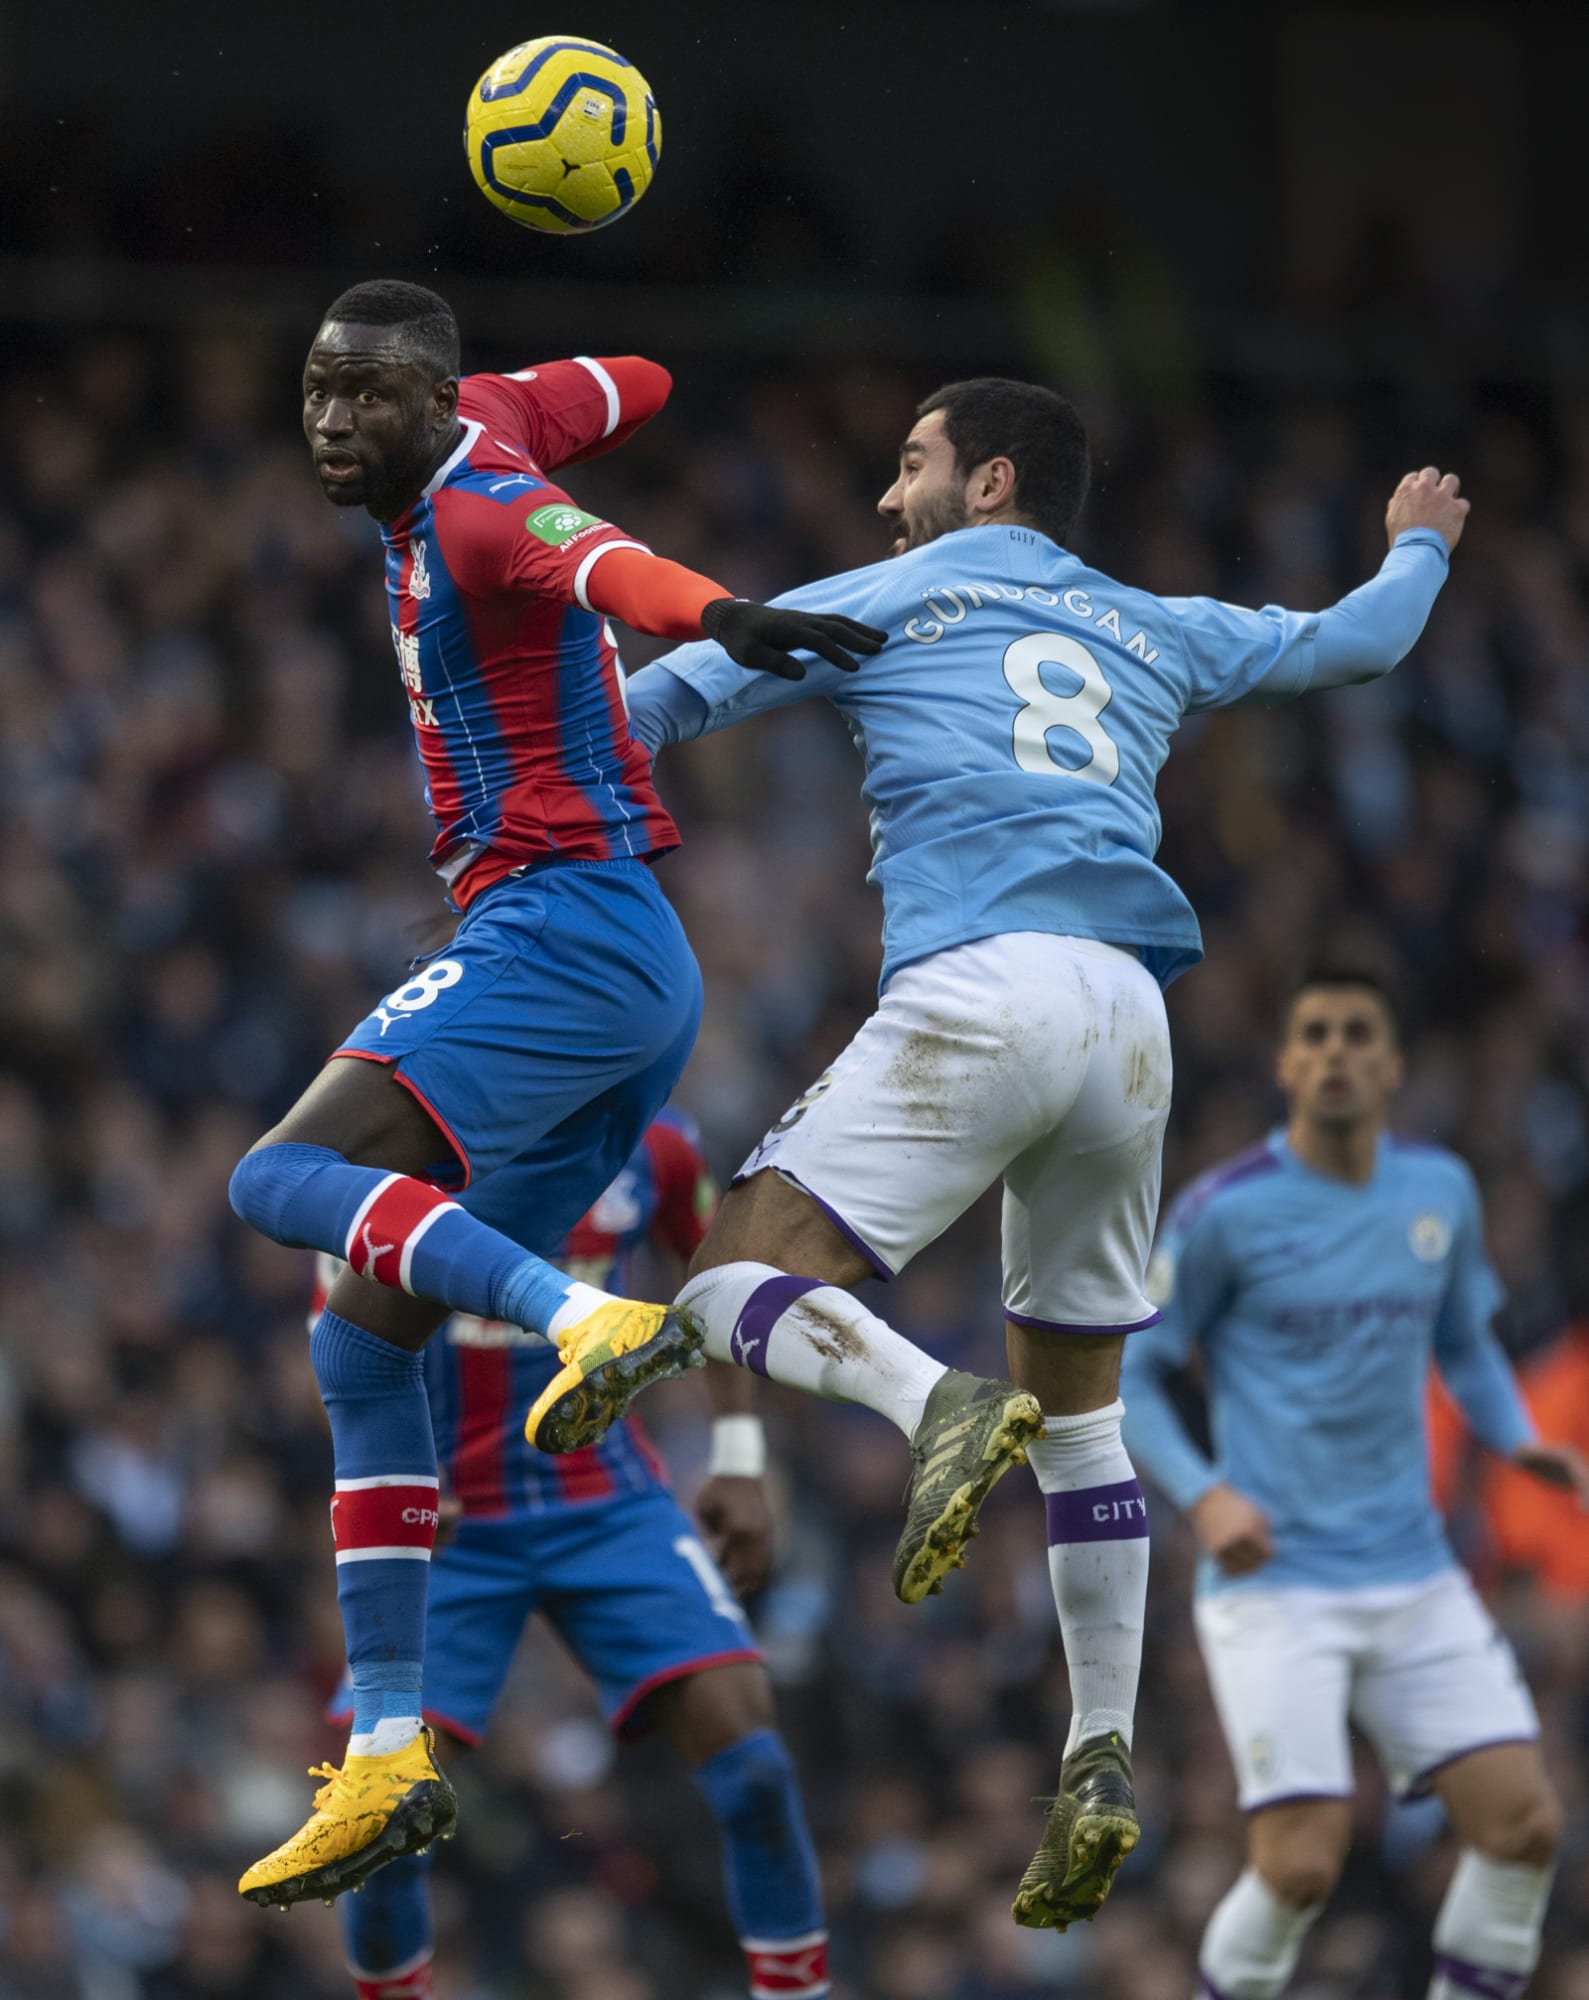 Manchester City-Crystal Palace Preview: Gaining Ground